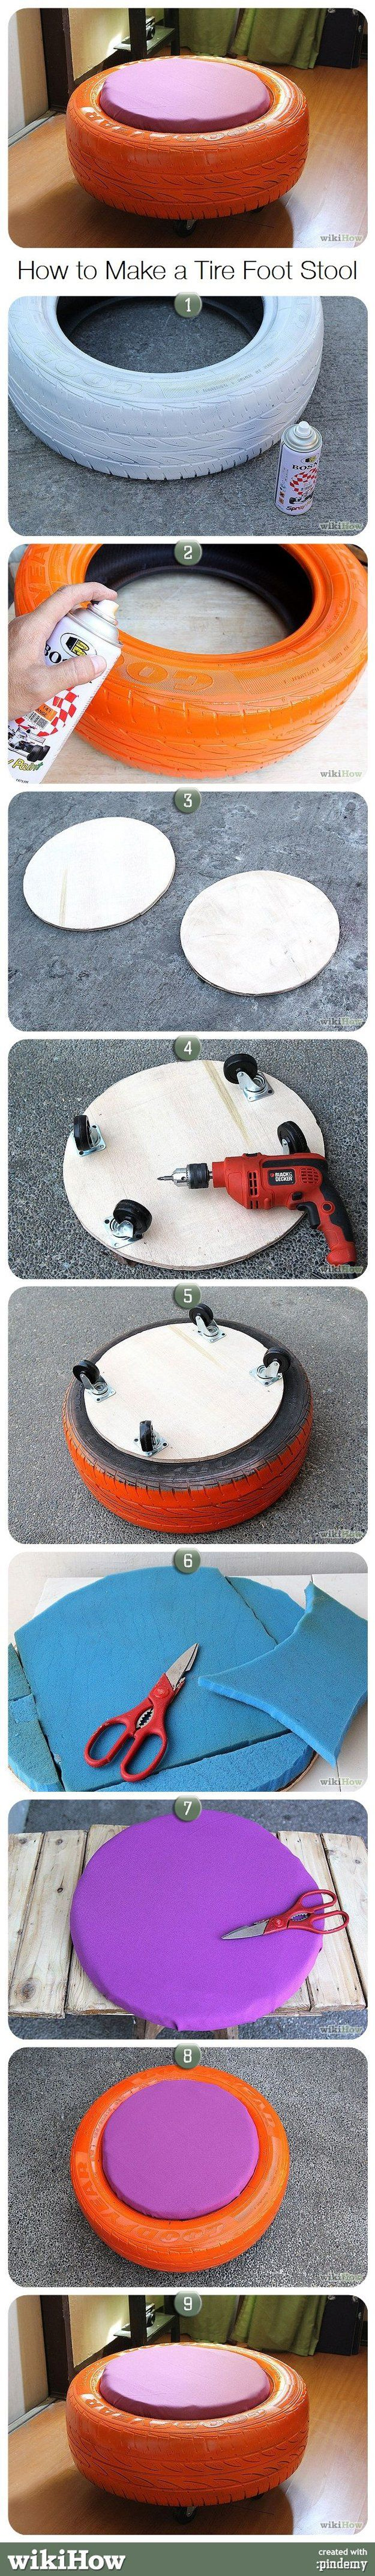 DIY Foot Stool